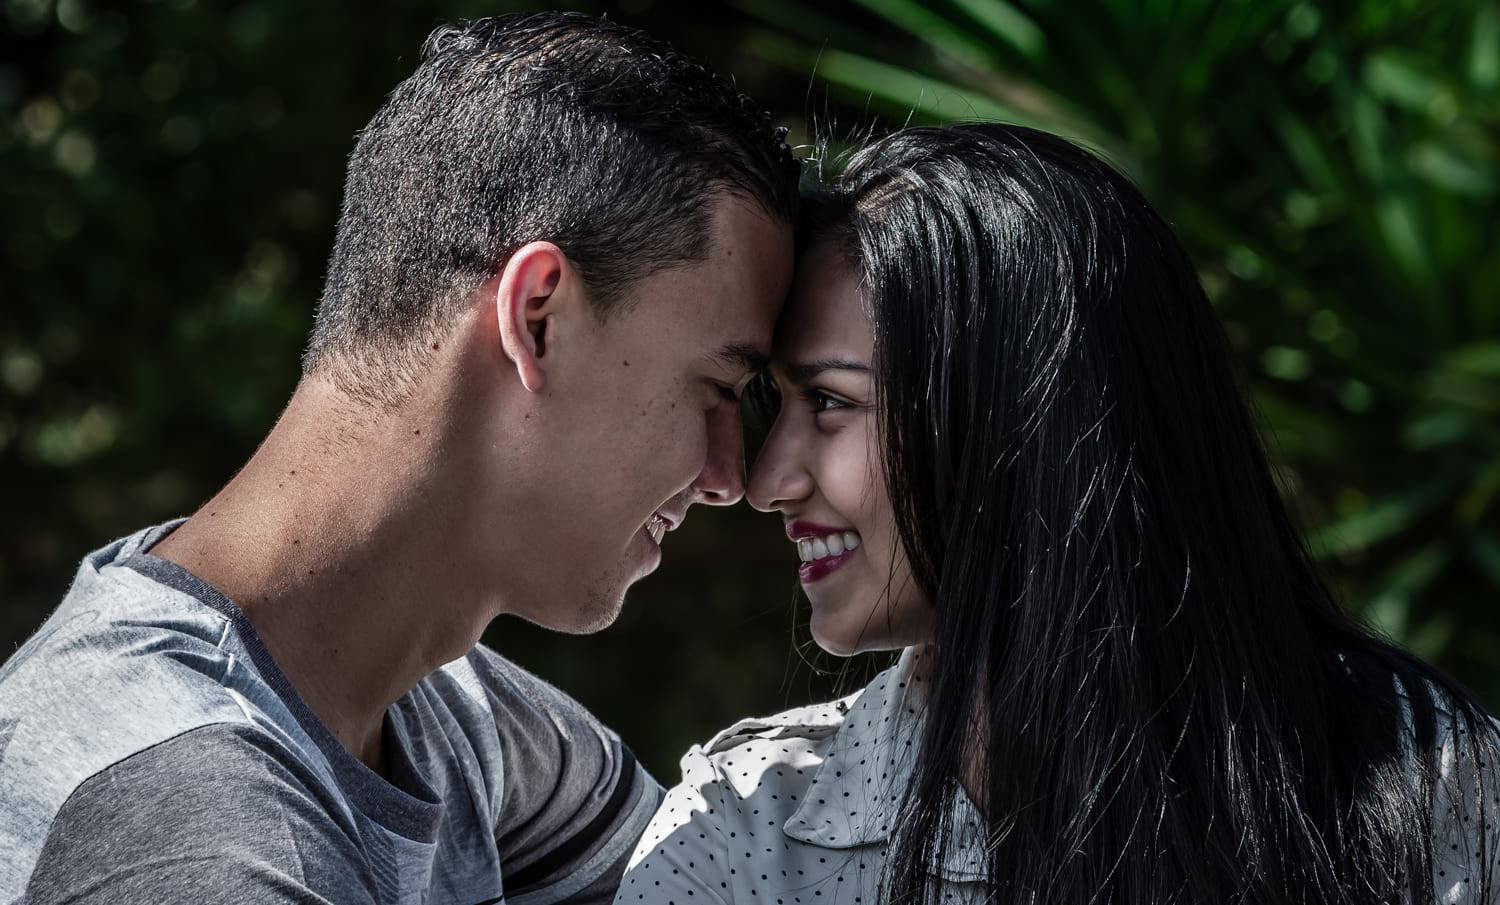 Photo of lovers touching foreheads during engagement session in Costa Rica.